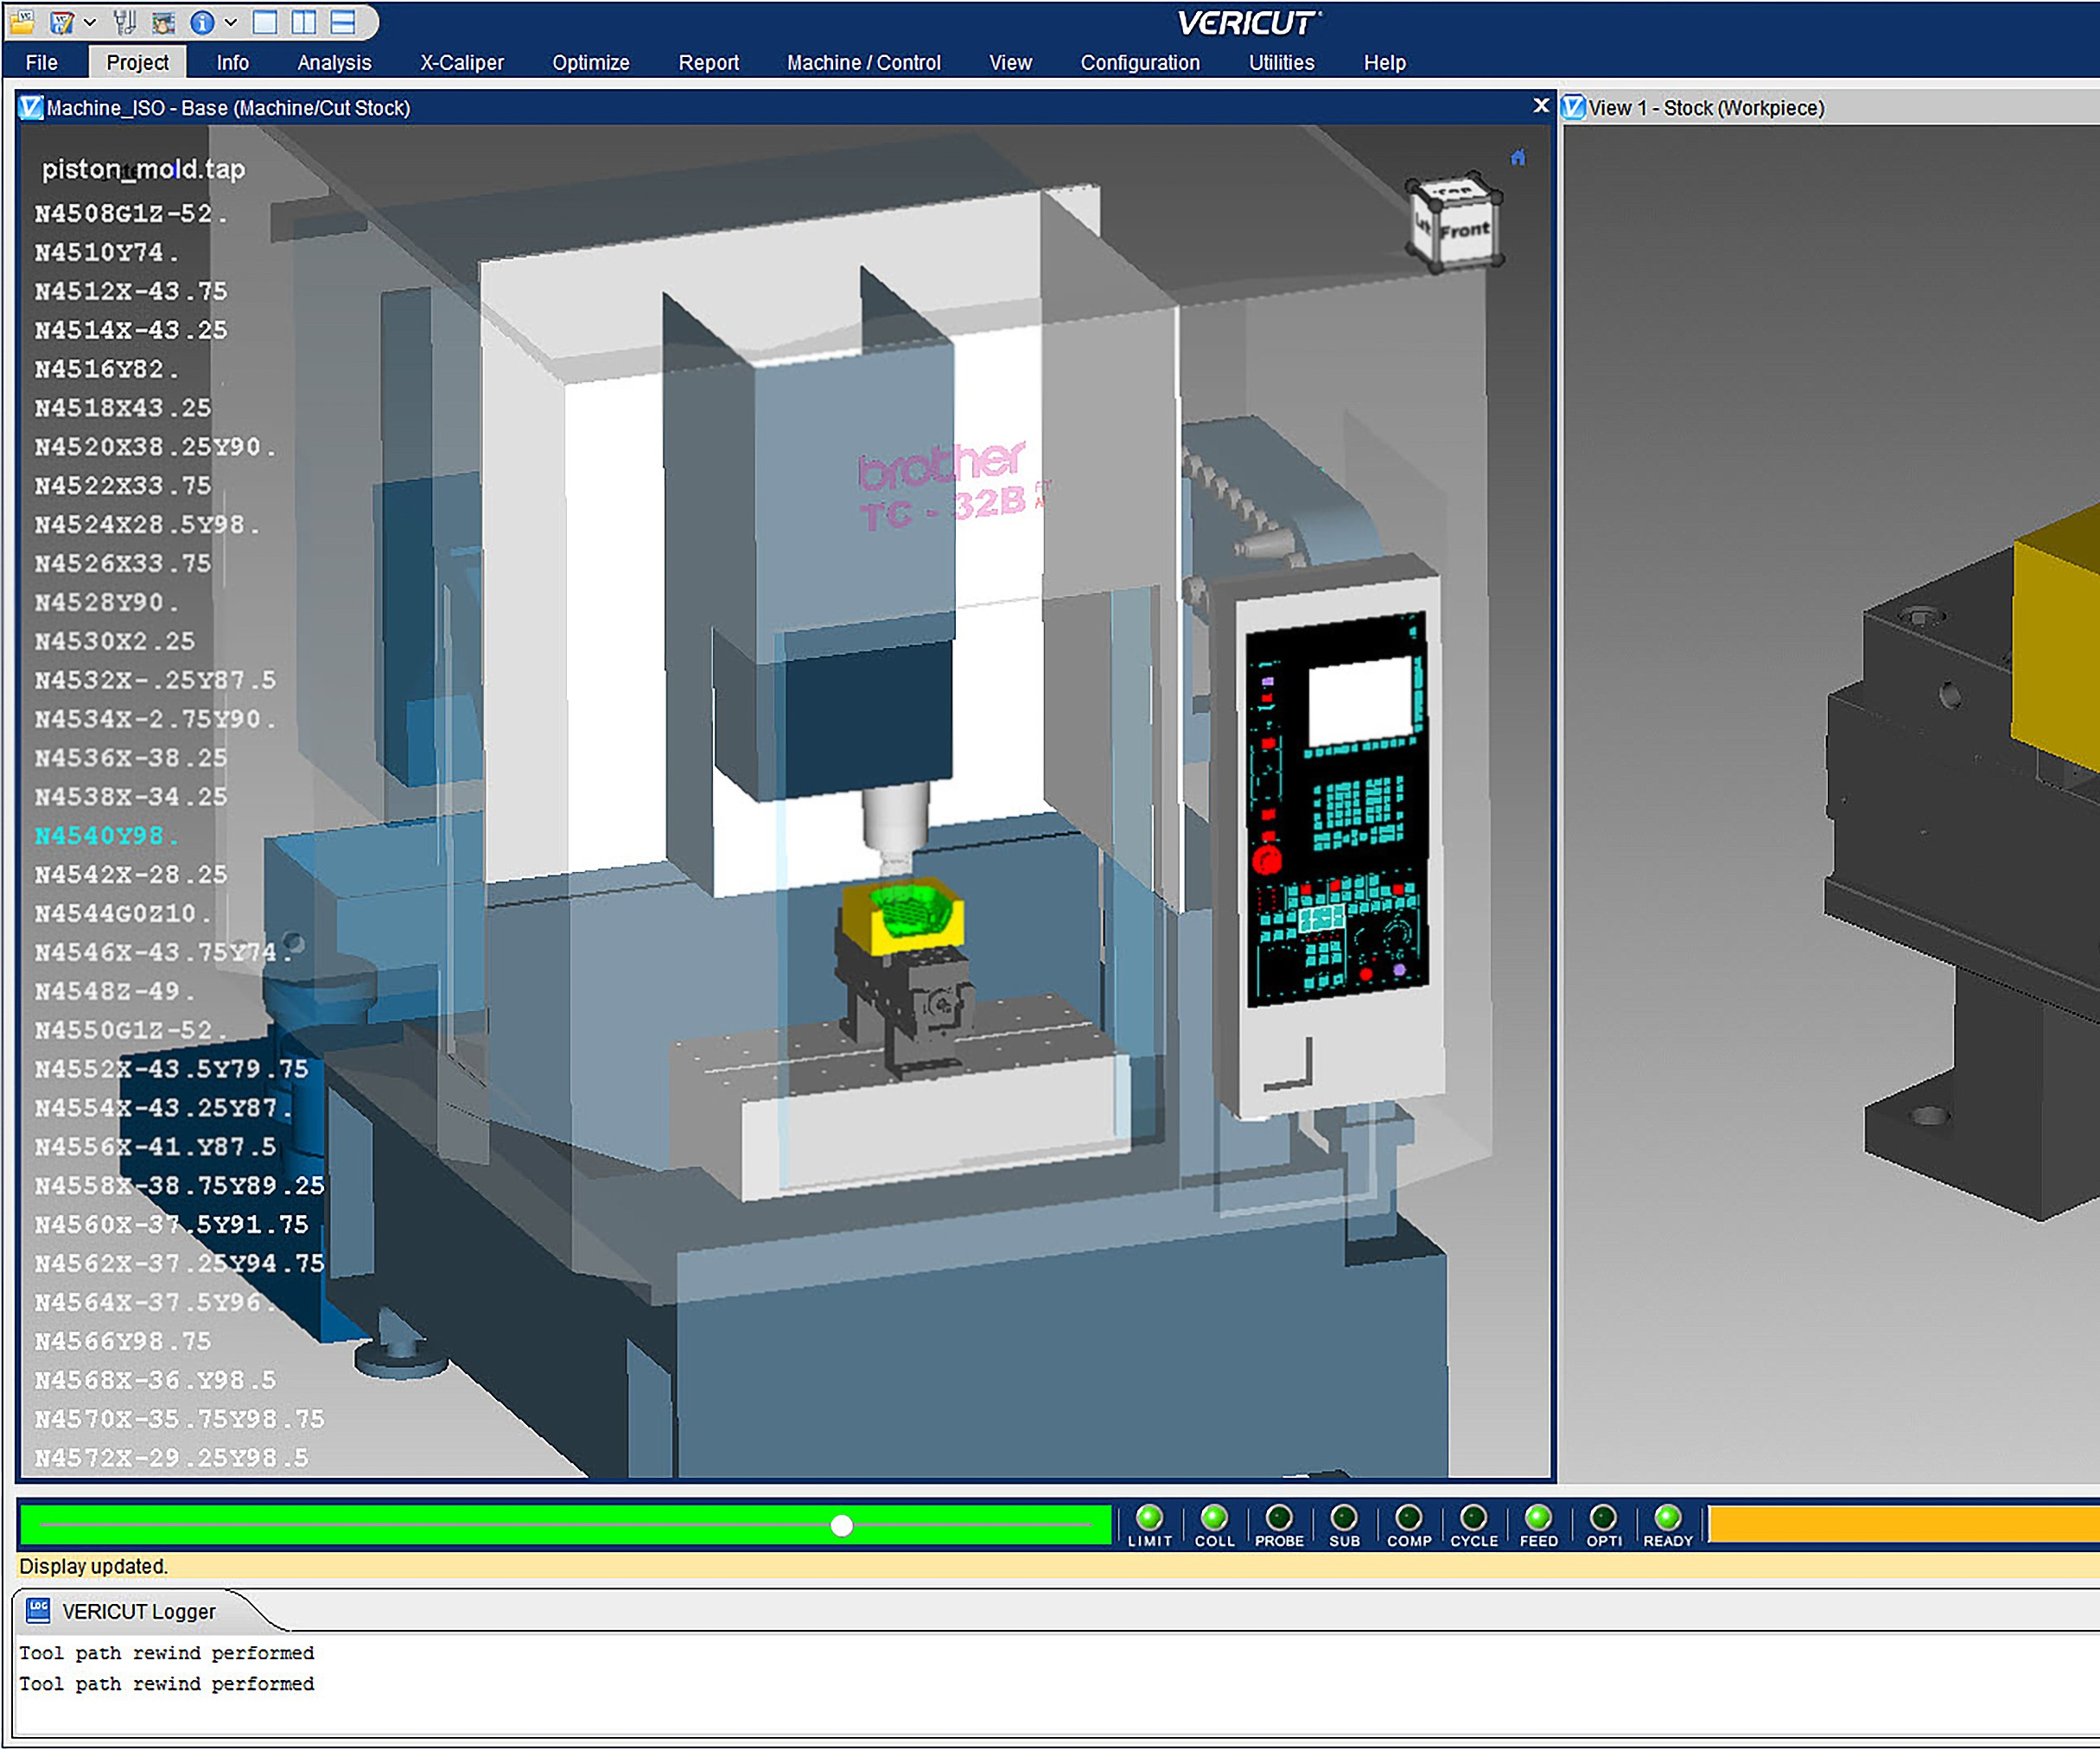 CGTech's Vericut Version 8.2 Software